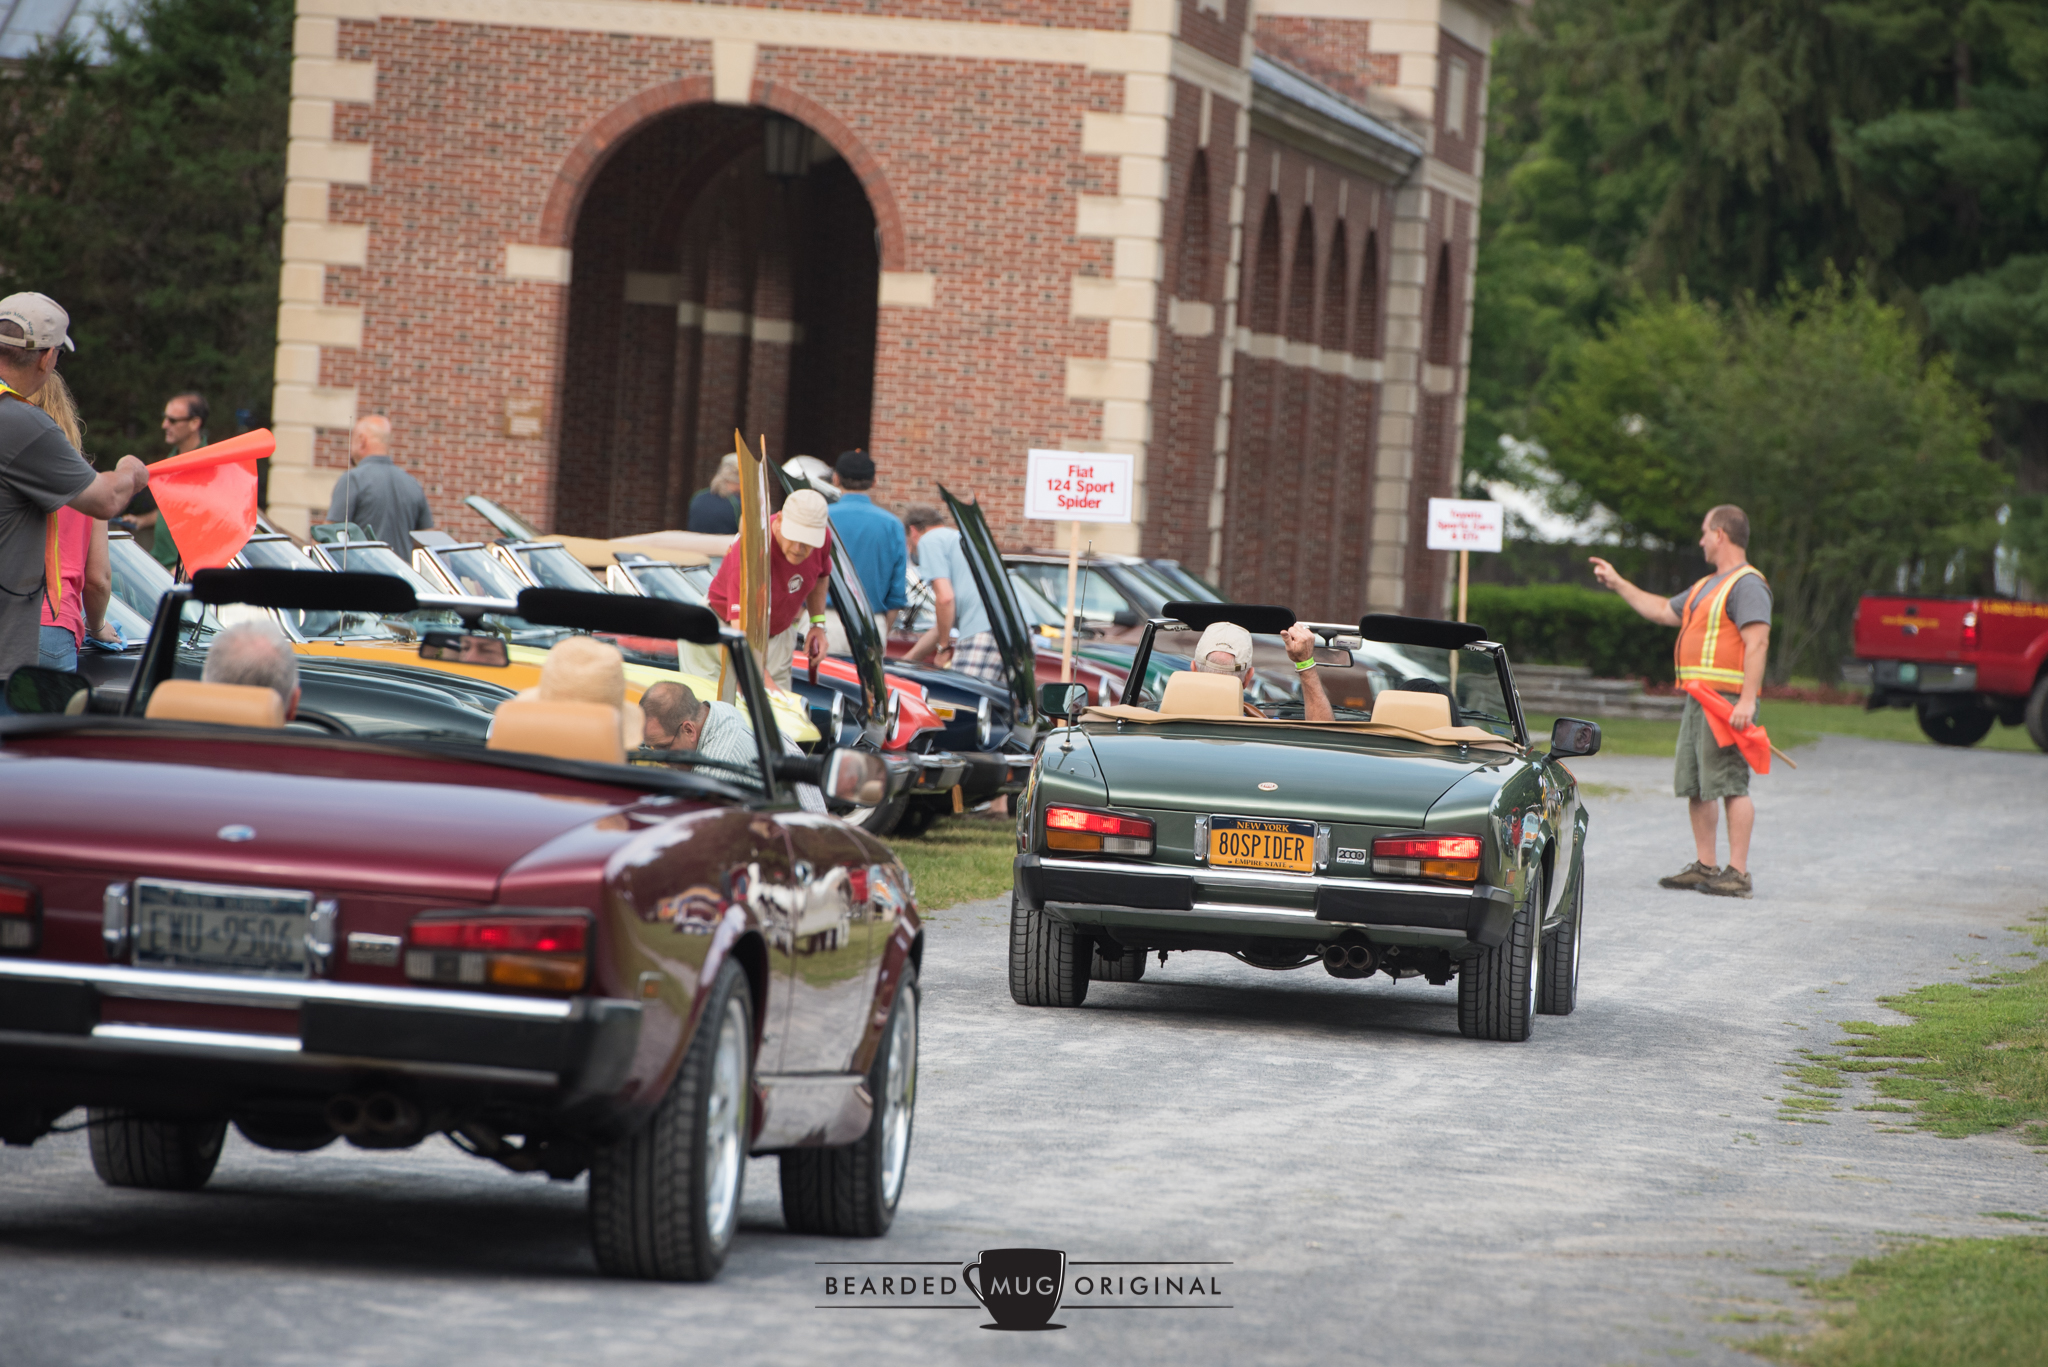 The Fiat 124 Sport Spider was also a featured class, bringing in nearly 30 arachnids from all over the northeast and beyond!